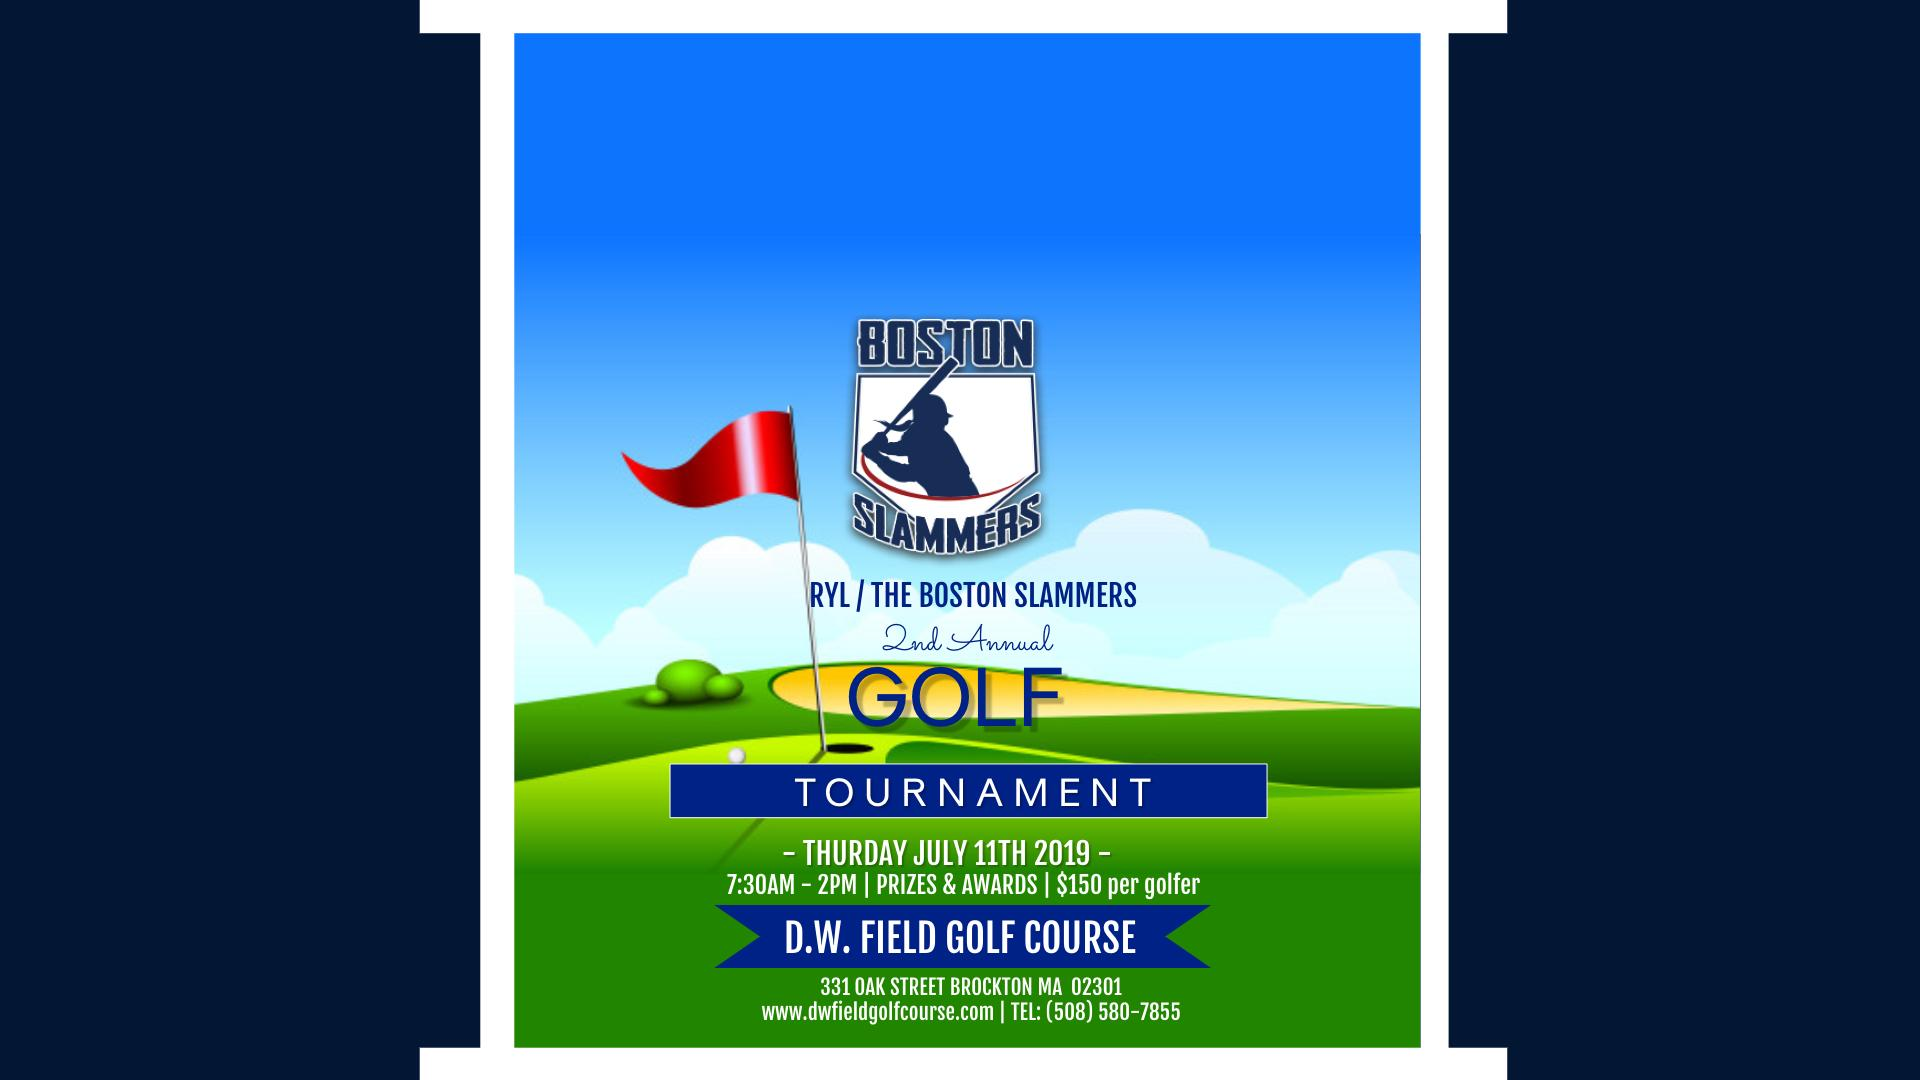 BOSTON SLAMMERS 2019 GOLF TOURNAMENT